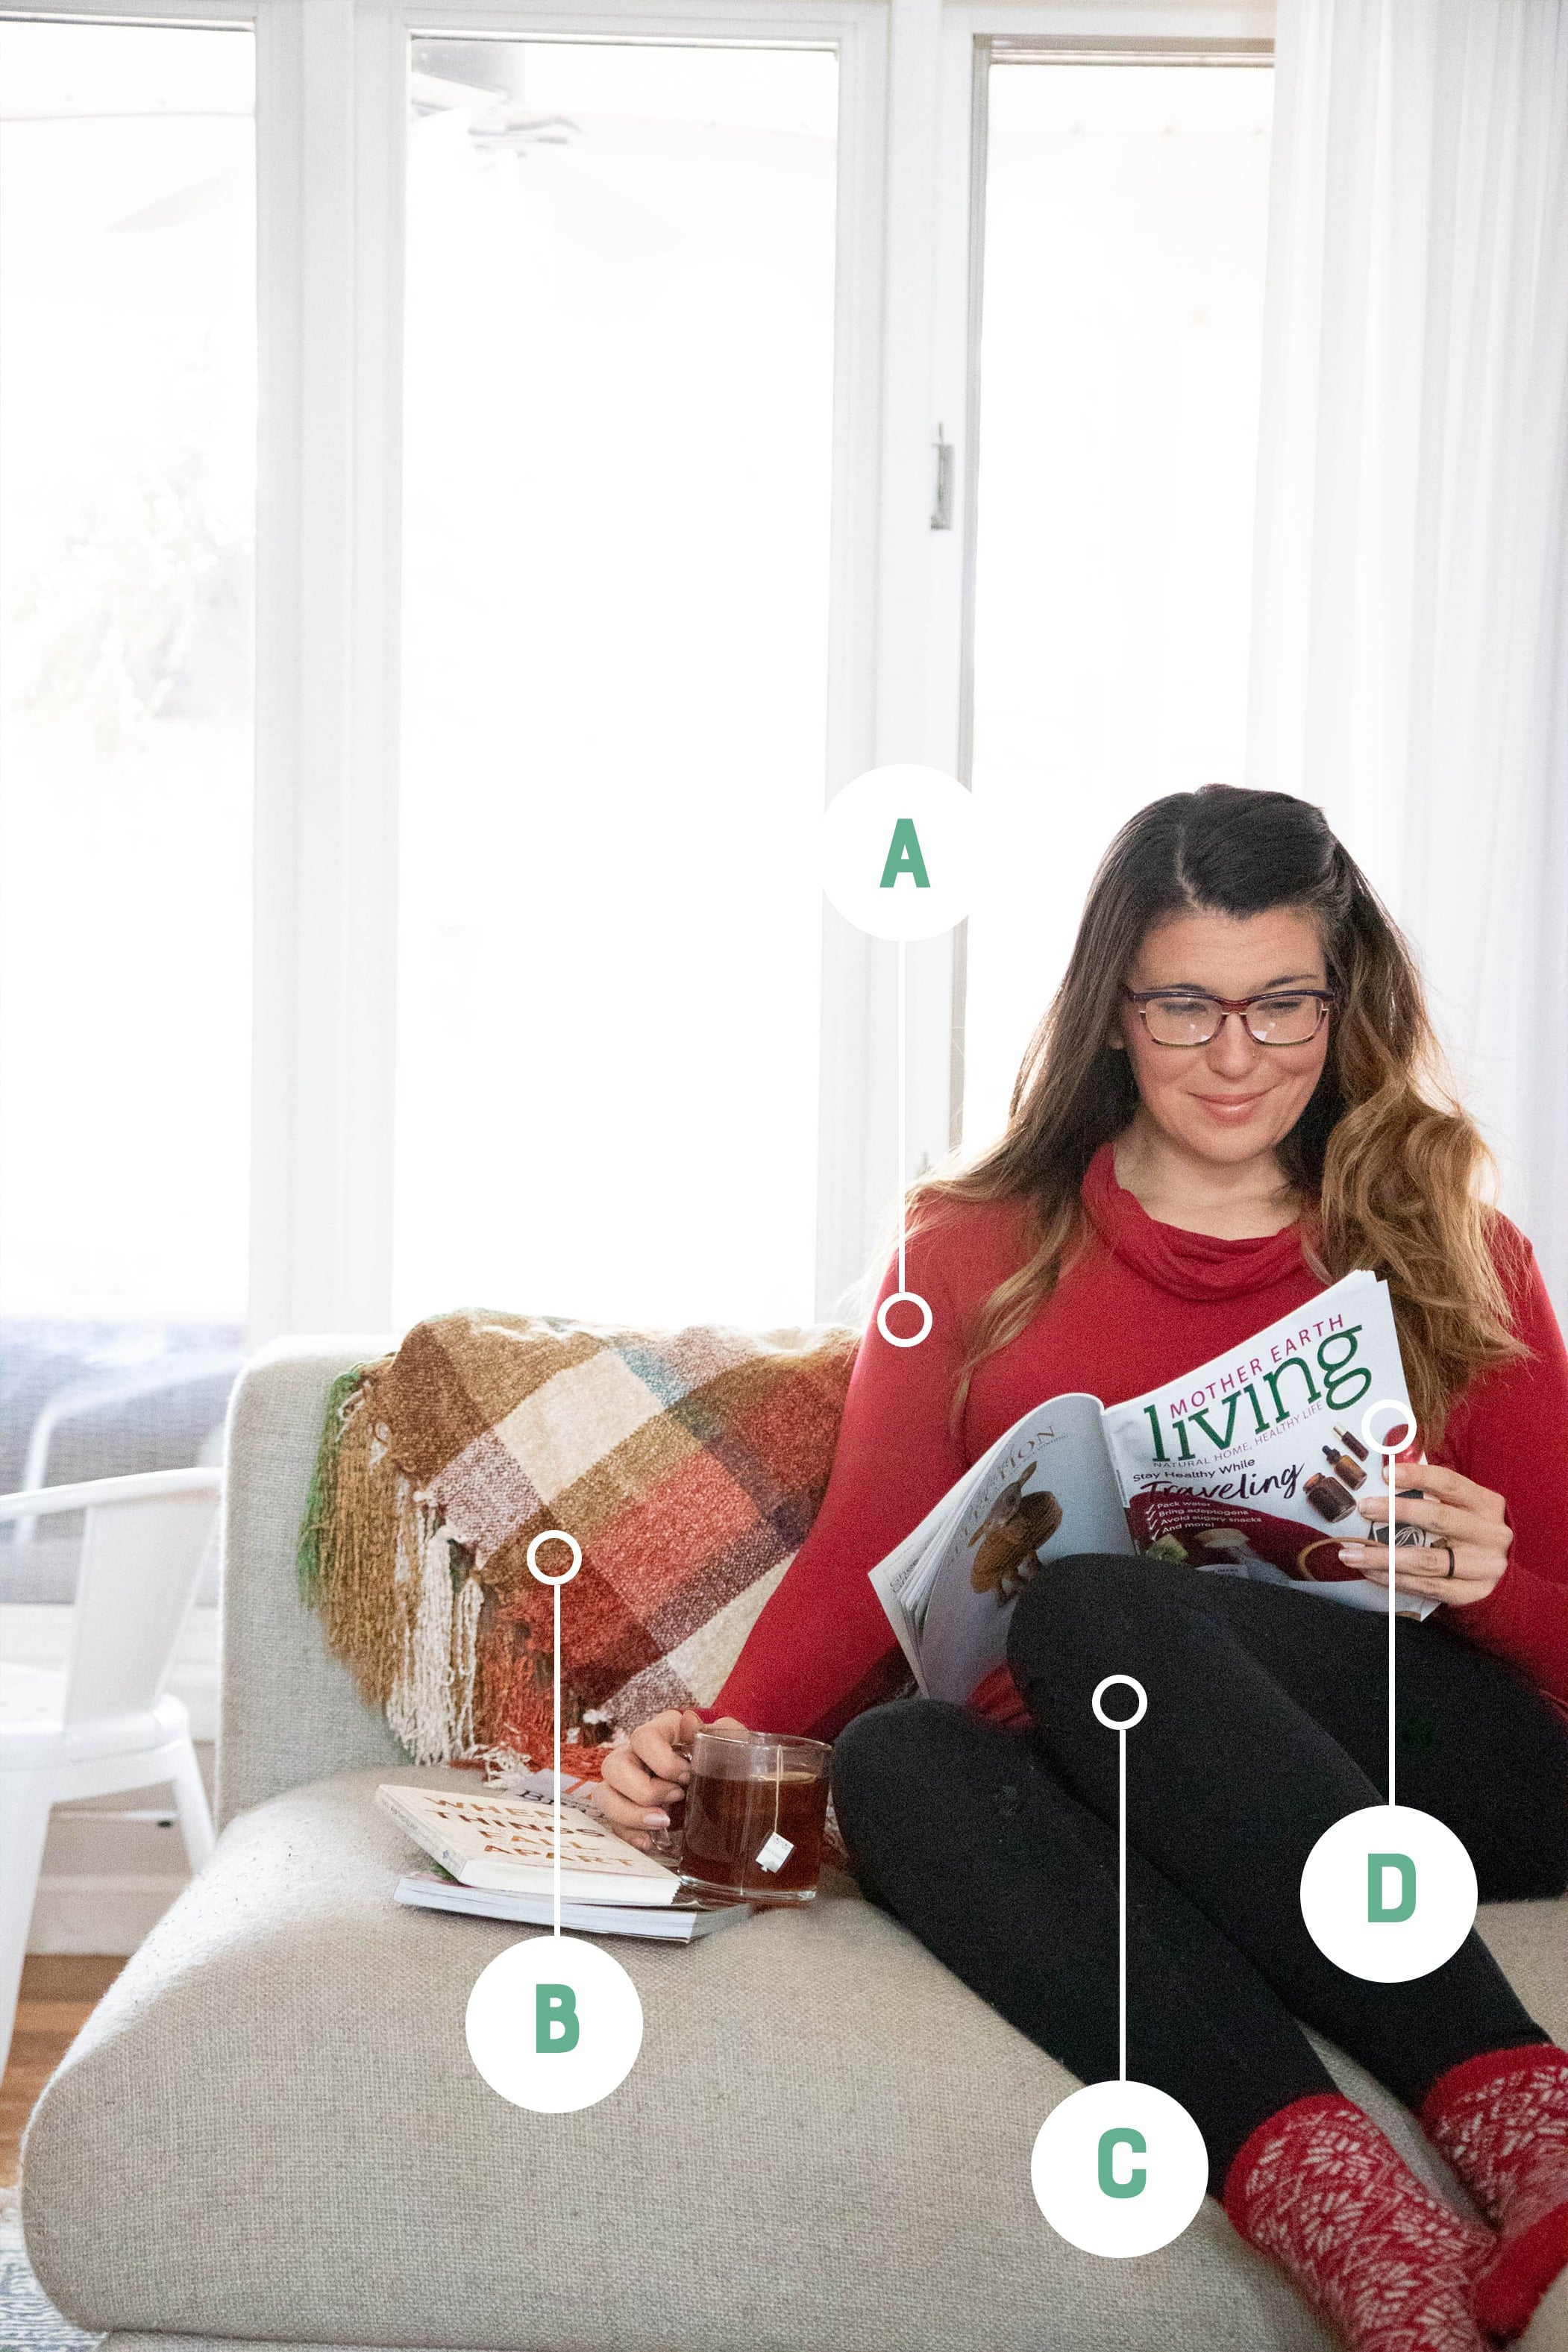 Woman in a red sweater and leggings sitting on a couch reading a magazine. Items are labeled with letters.